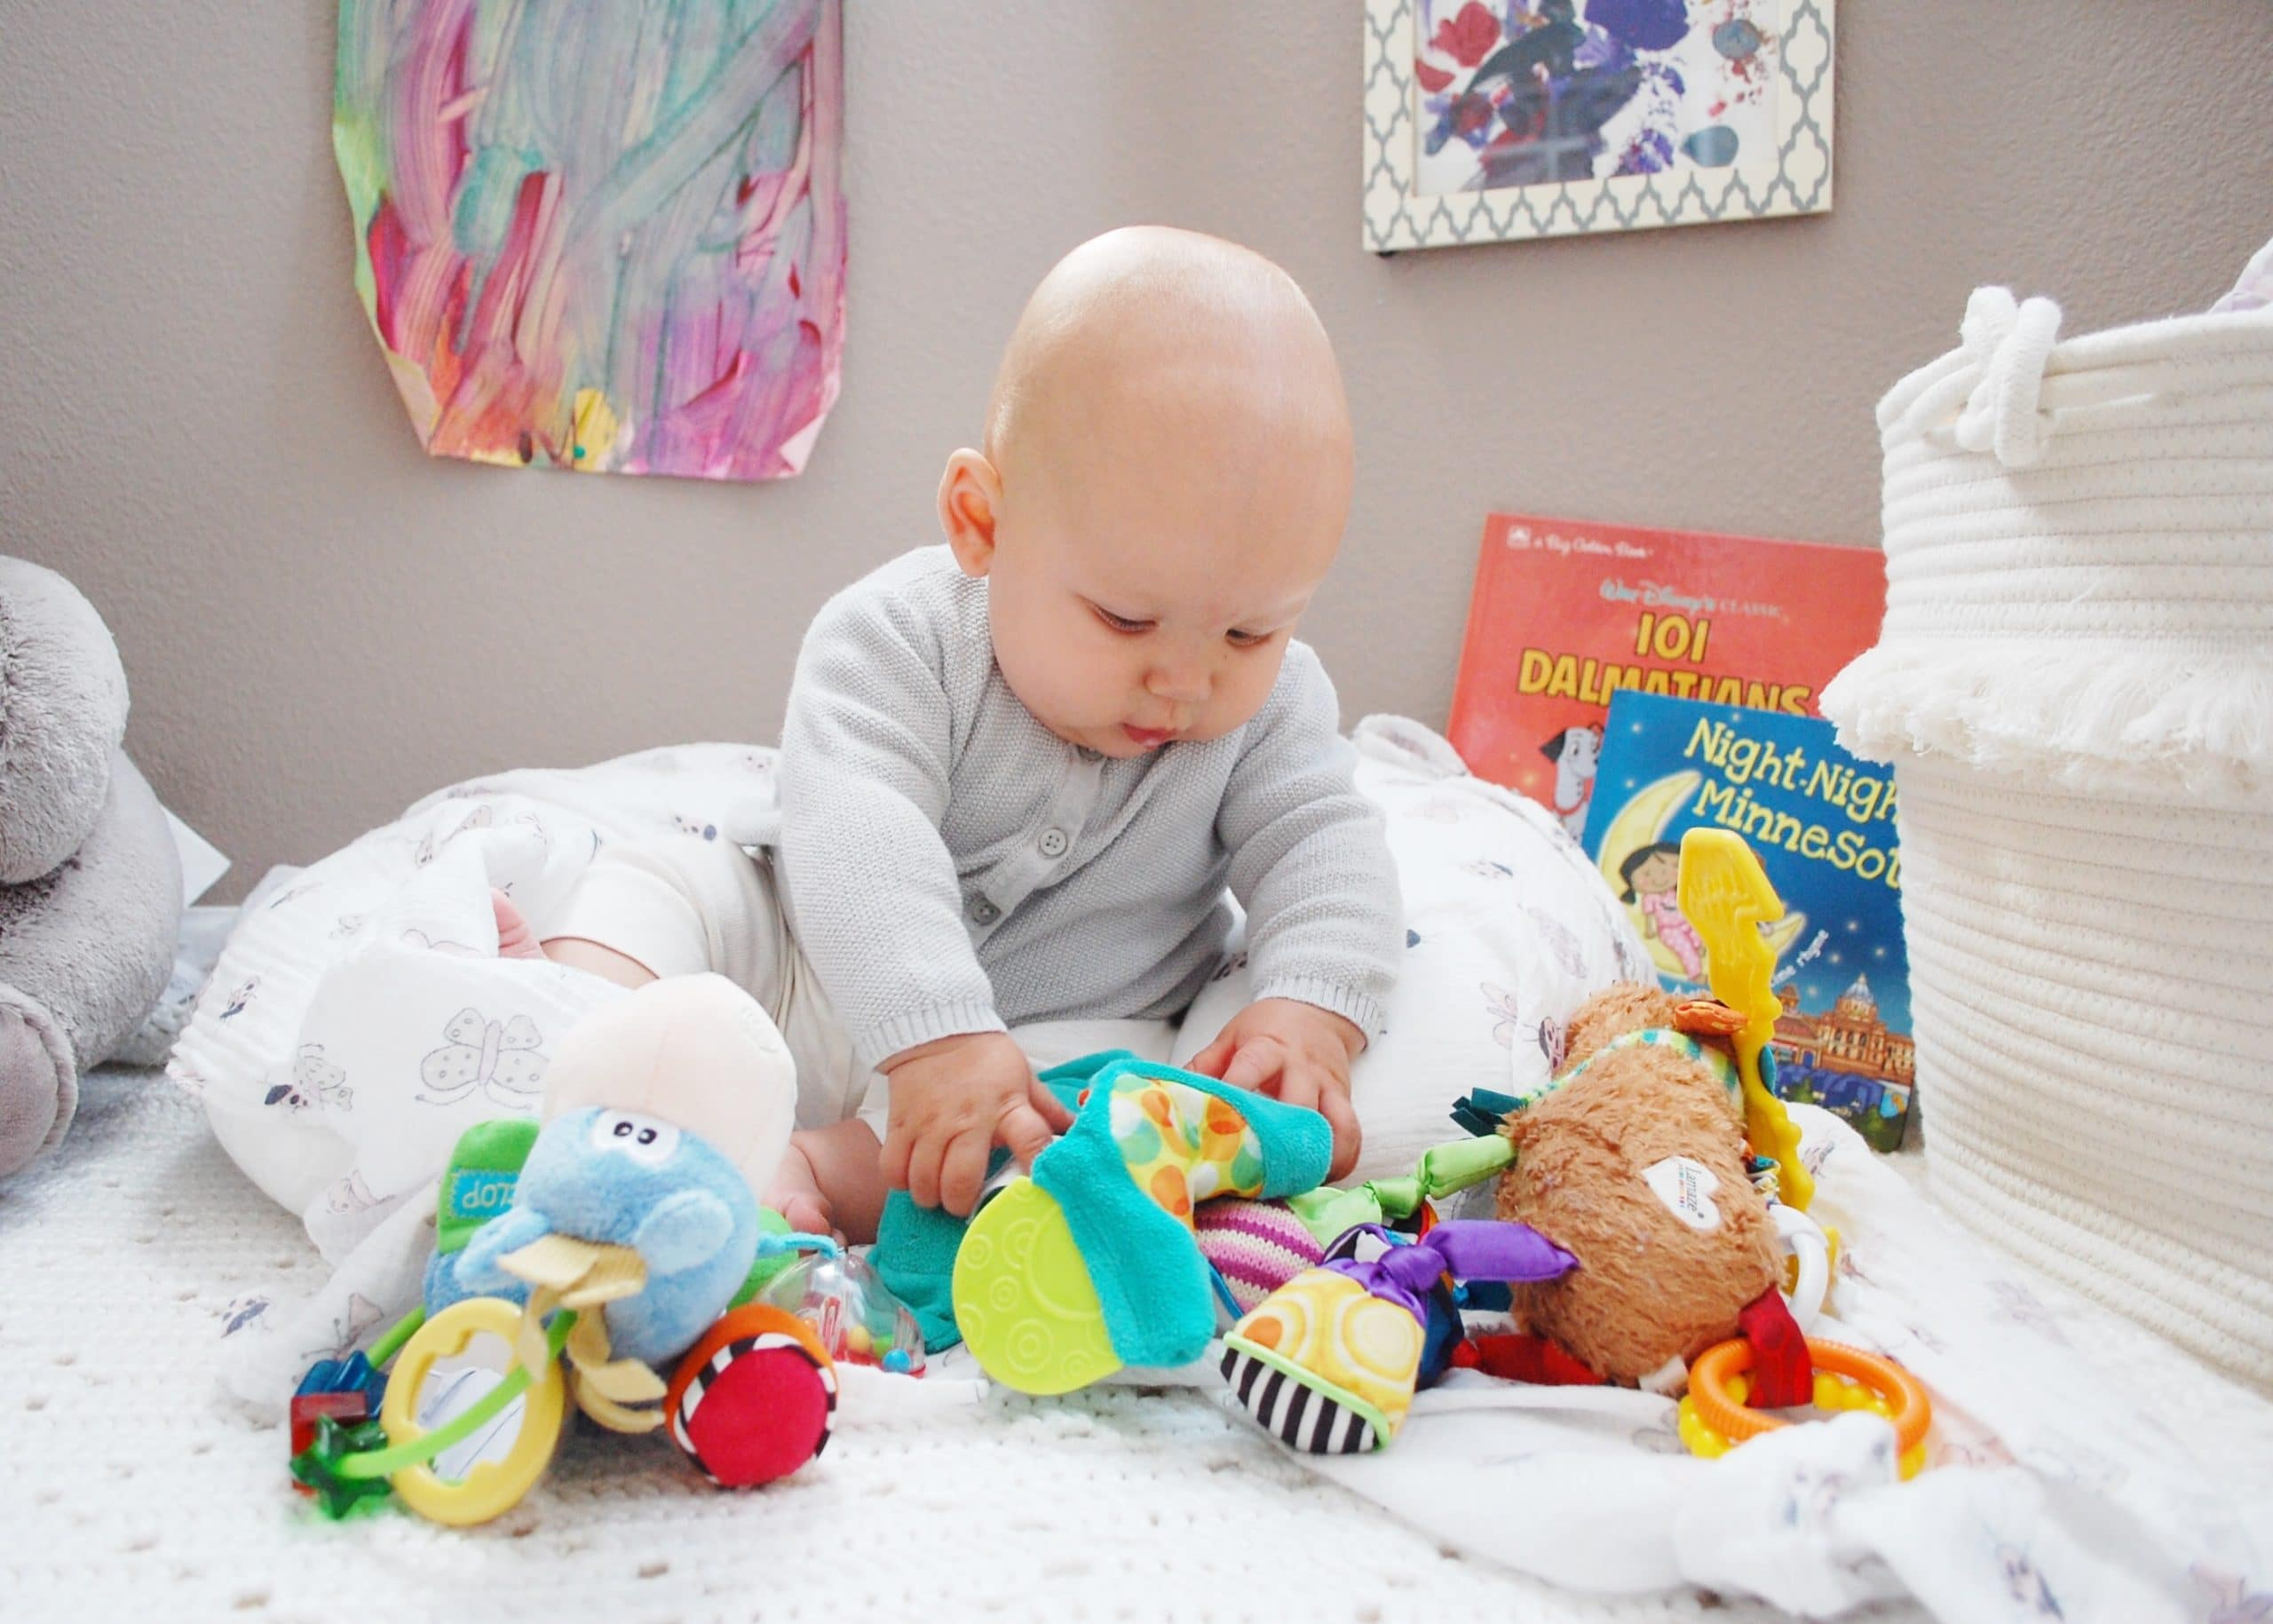 Lily playing with toys